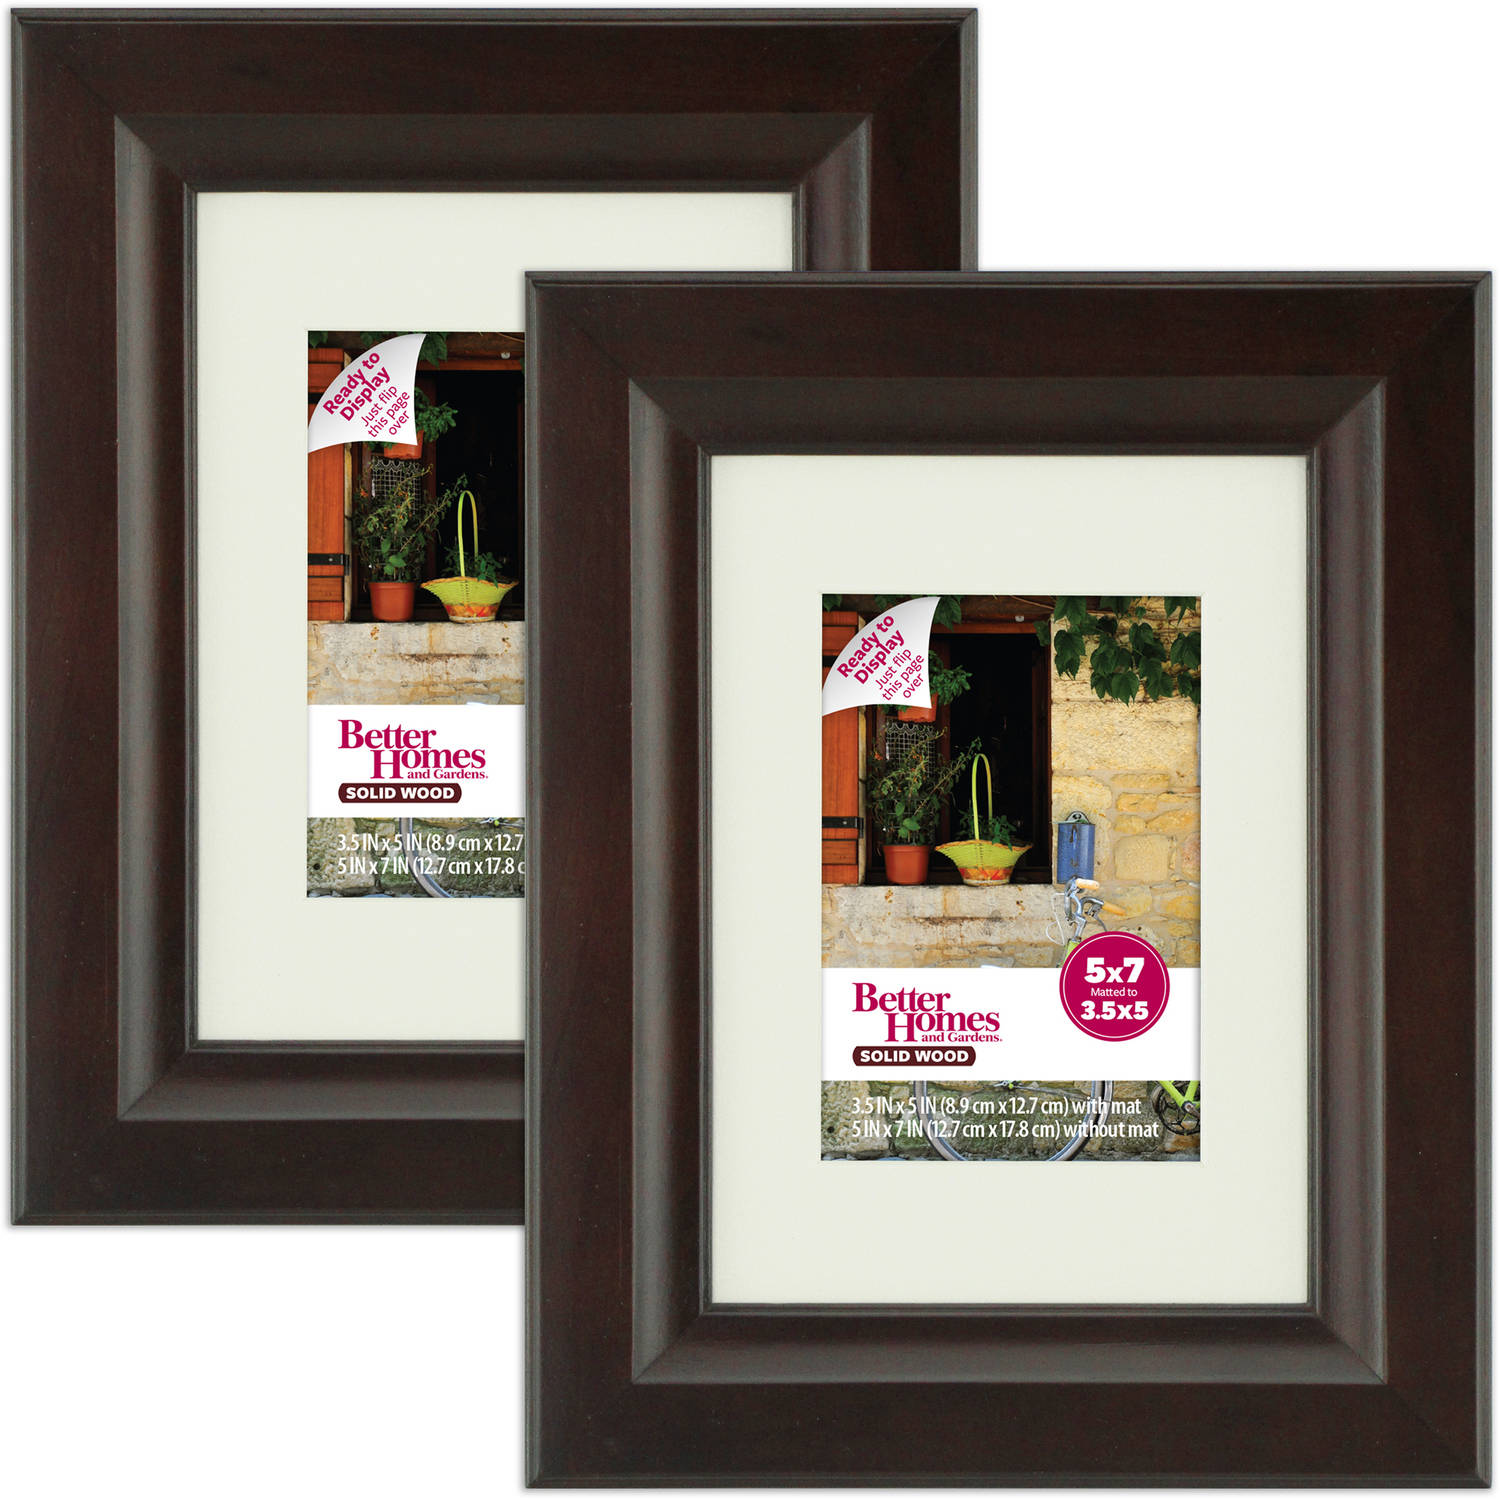 "Better Homes and Gardens Wide 5"" x 7"" Brown Frames, Set of 2"